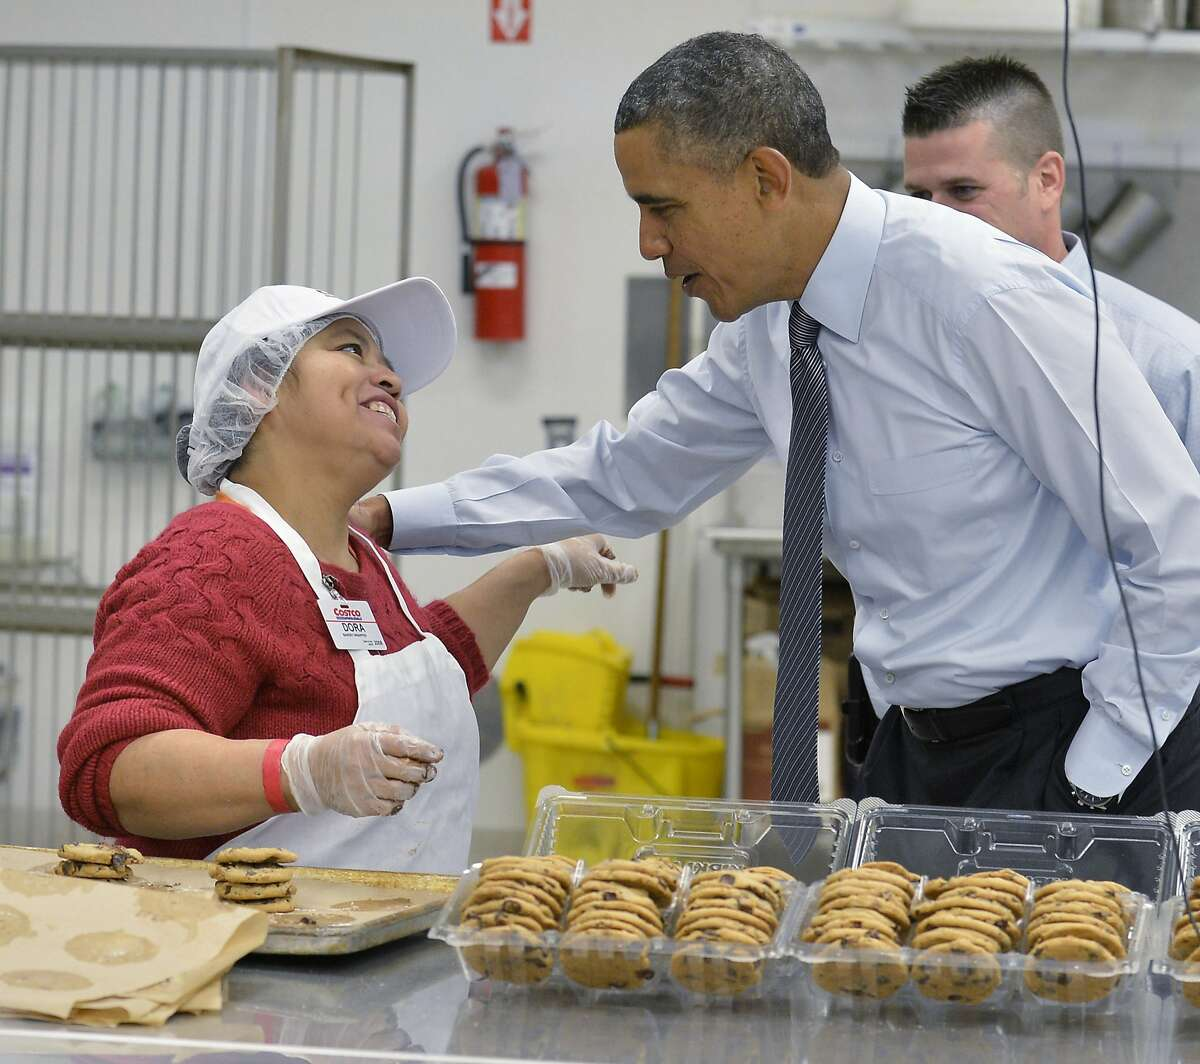 President Obama greets an employee in the bakery at a Costco store Wednesday in Lanham, Md., before he spoke about raising the minimum wage. Obama is promoting plans to boost wages for some workers and help Americans save for retirement -- no action from Congress necessary. (Photo by Mike Theiler-Pool/Getty Images)